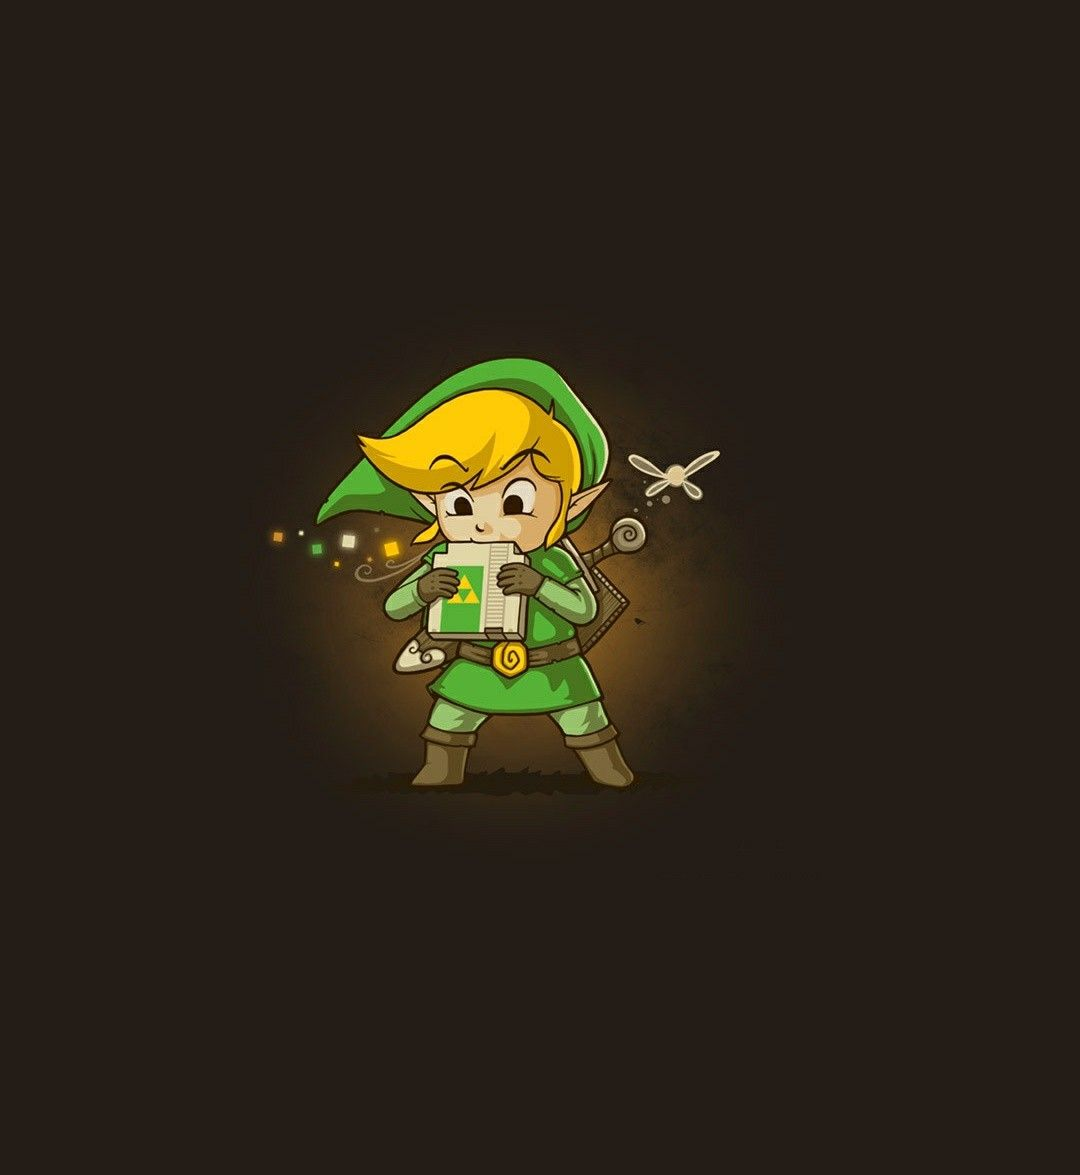 Iphone Full Hd Zelda Wallpaper